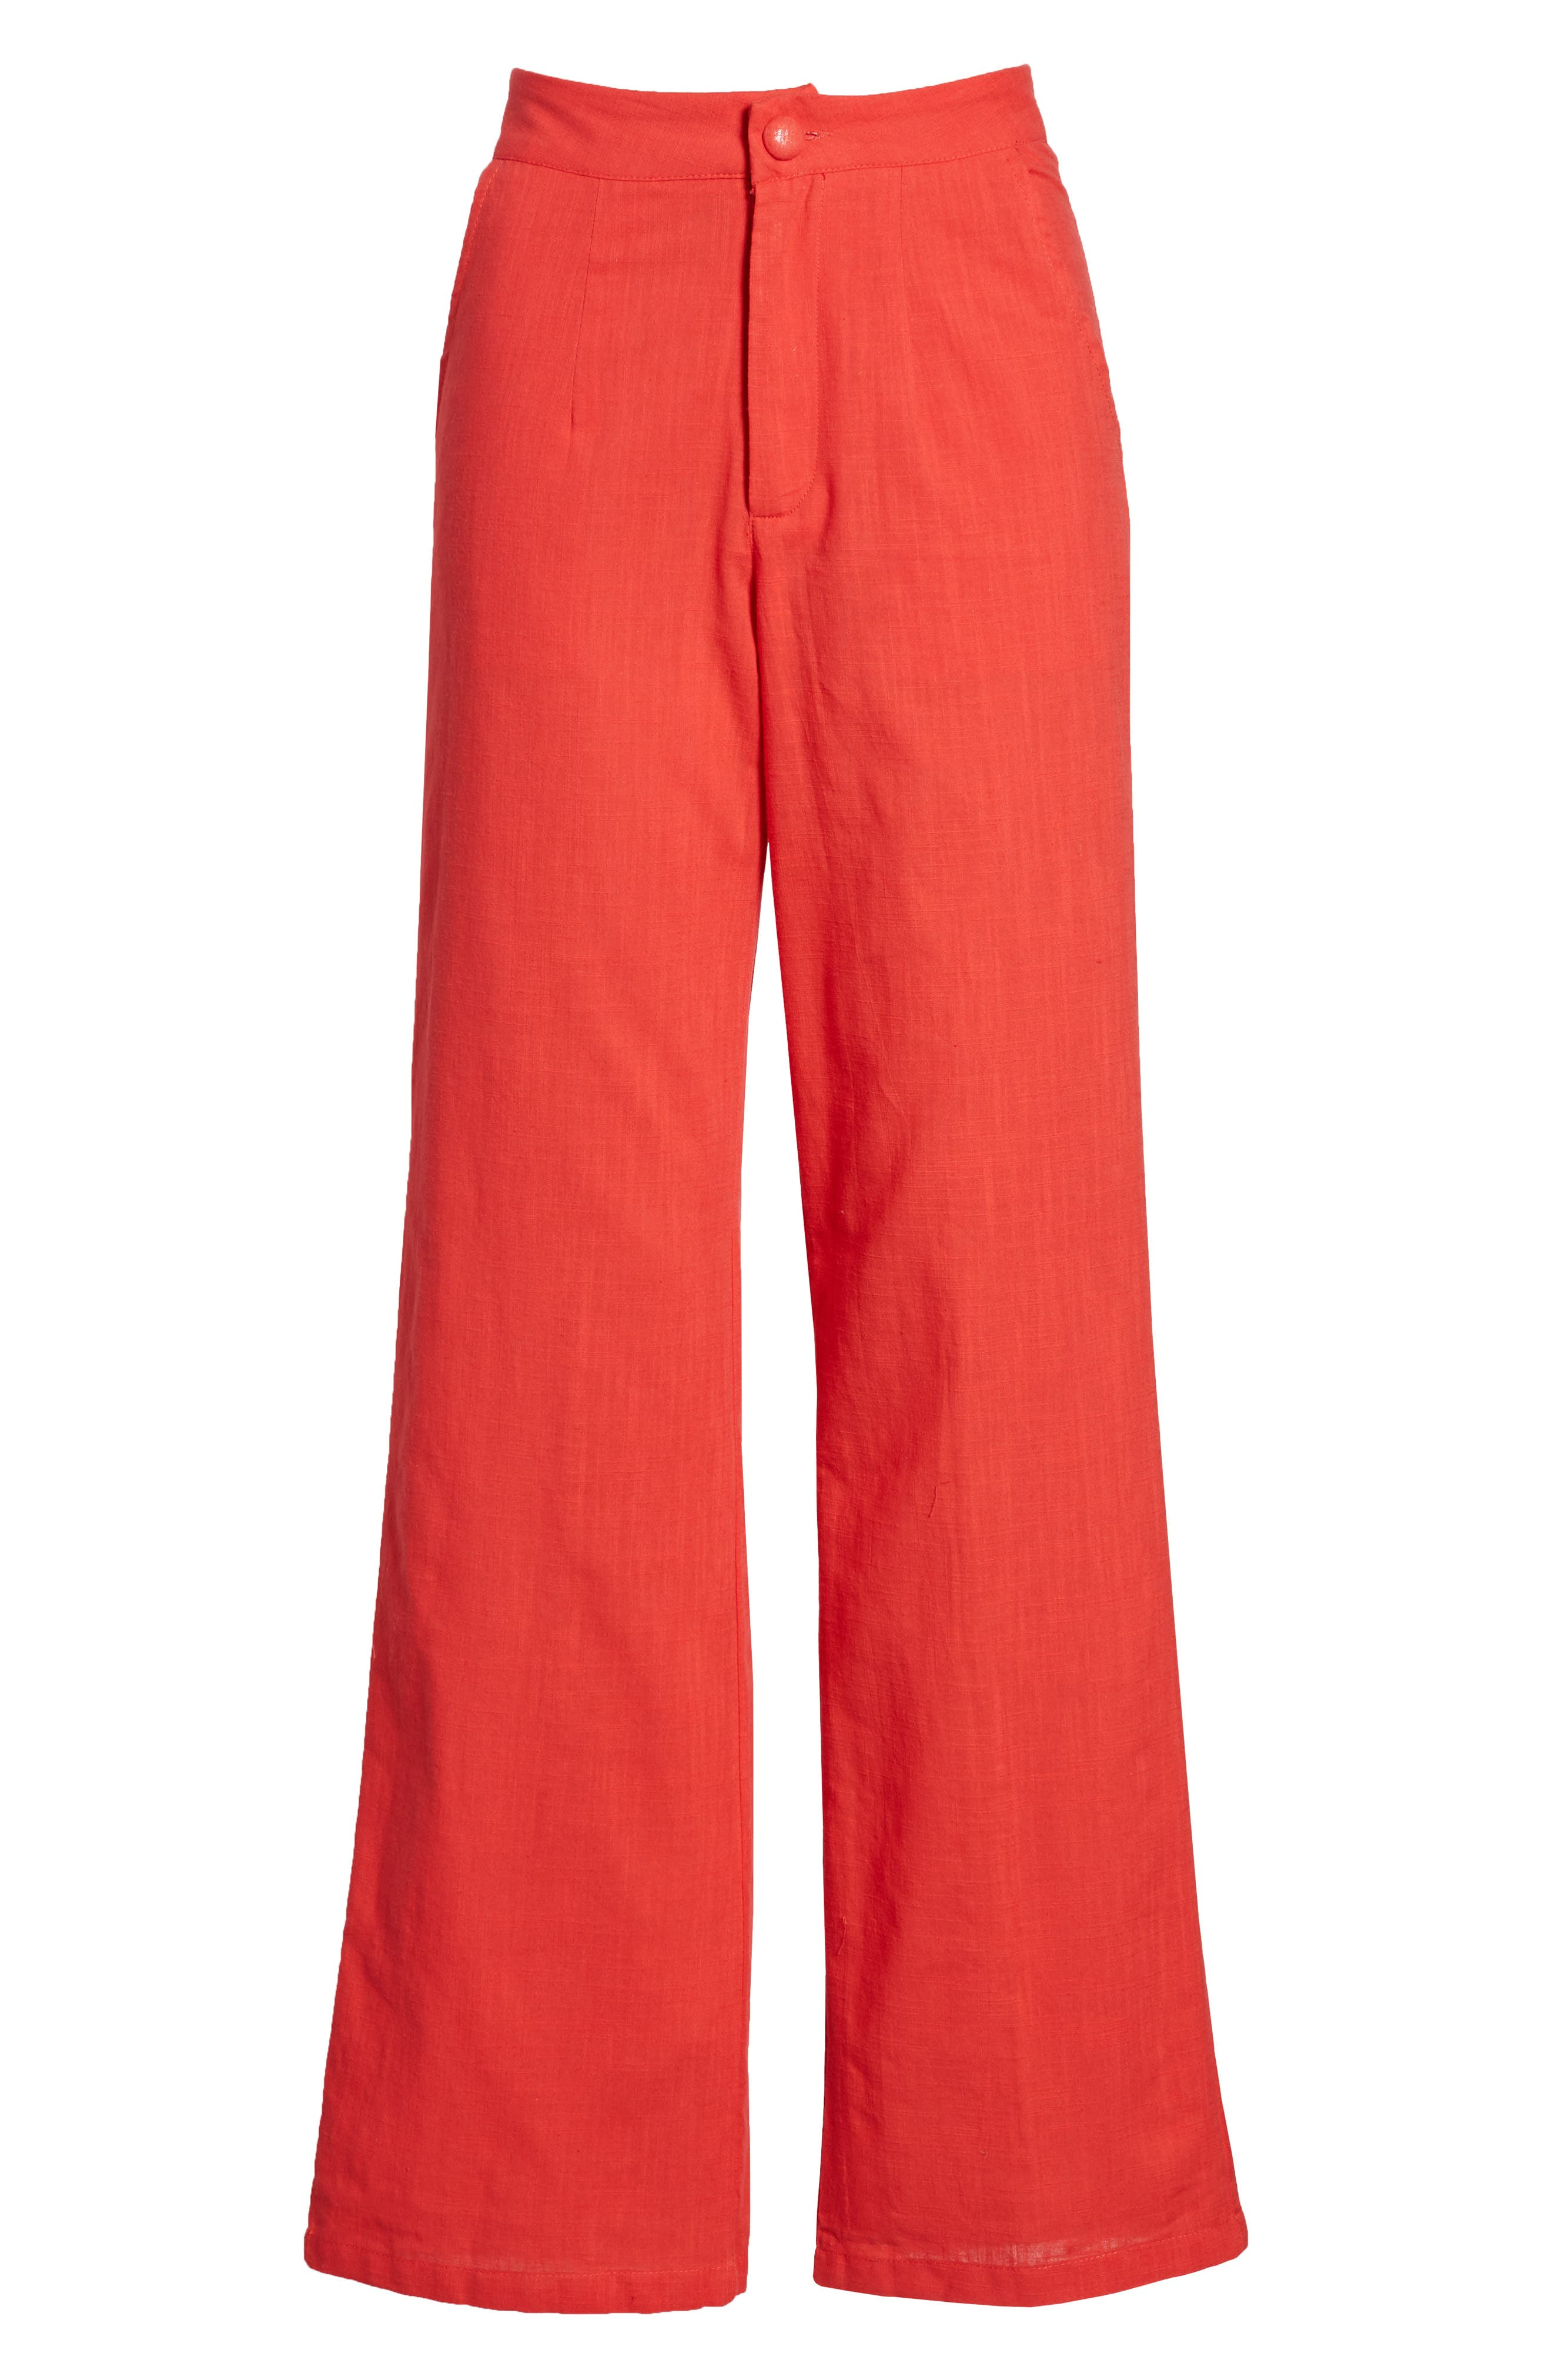 Femme Fatale High Waist Pants,                             Alternate thumbnail 7, color,